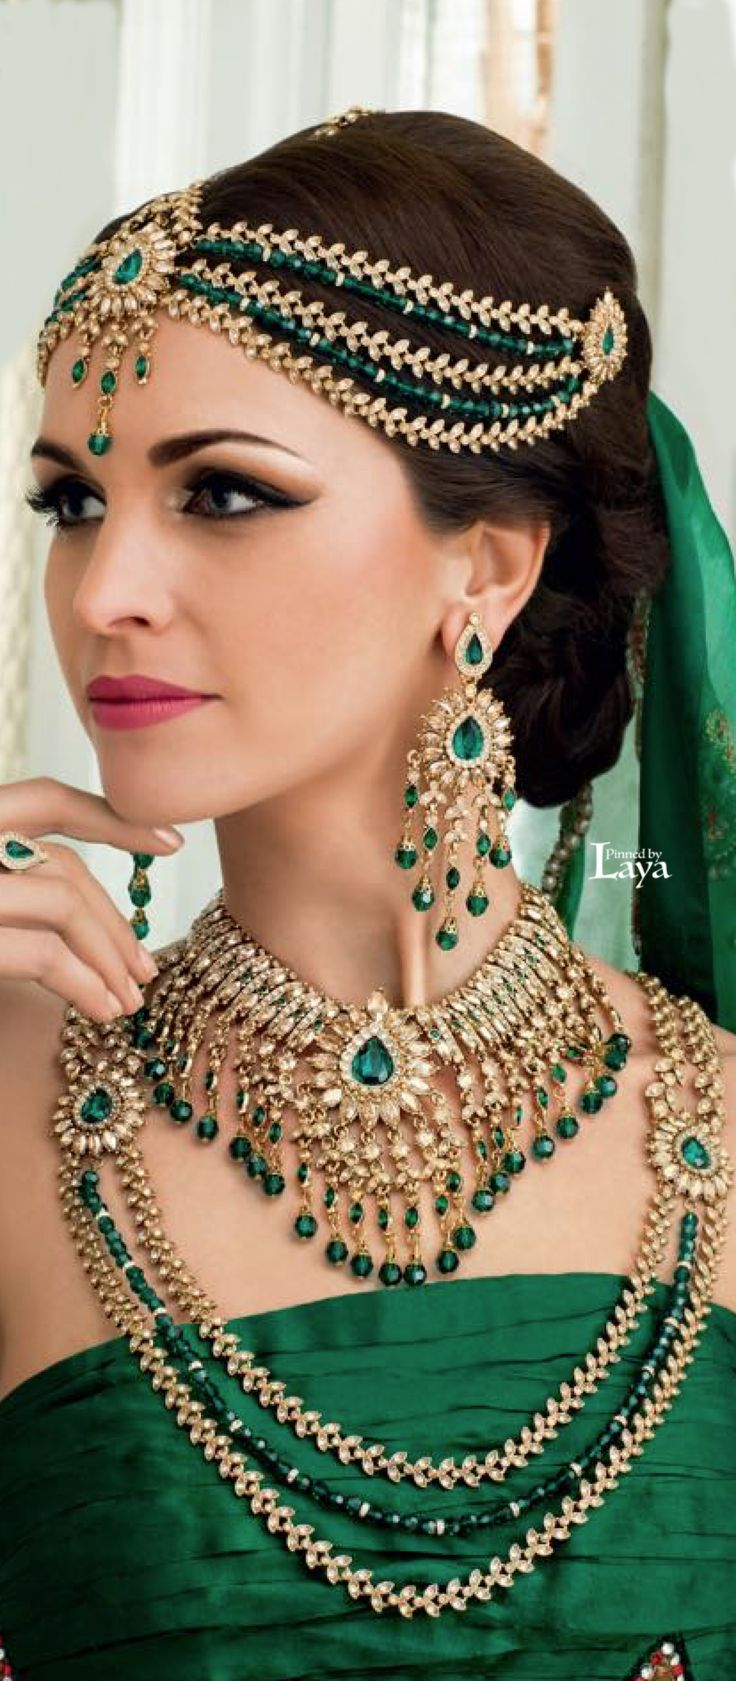 Love the jewelry! Indian Bride #asian_style #fashion #saree #wedding #indian